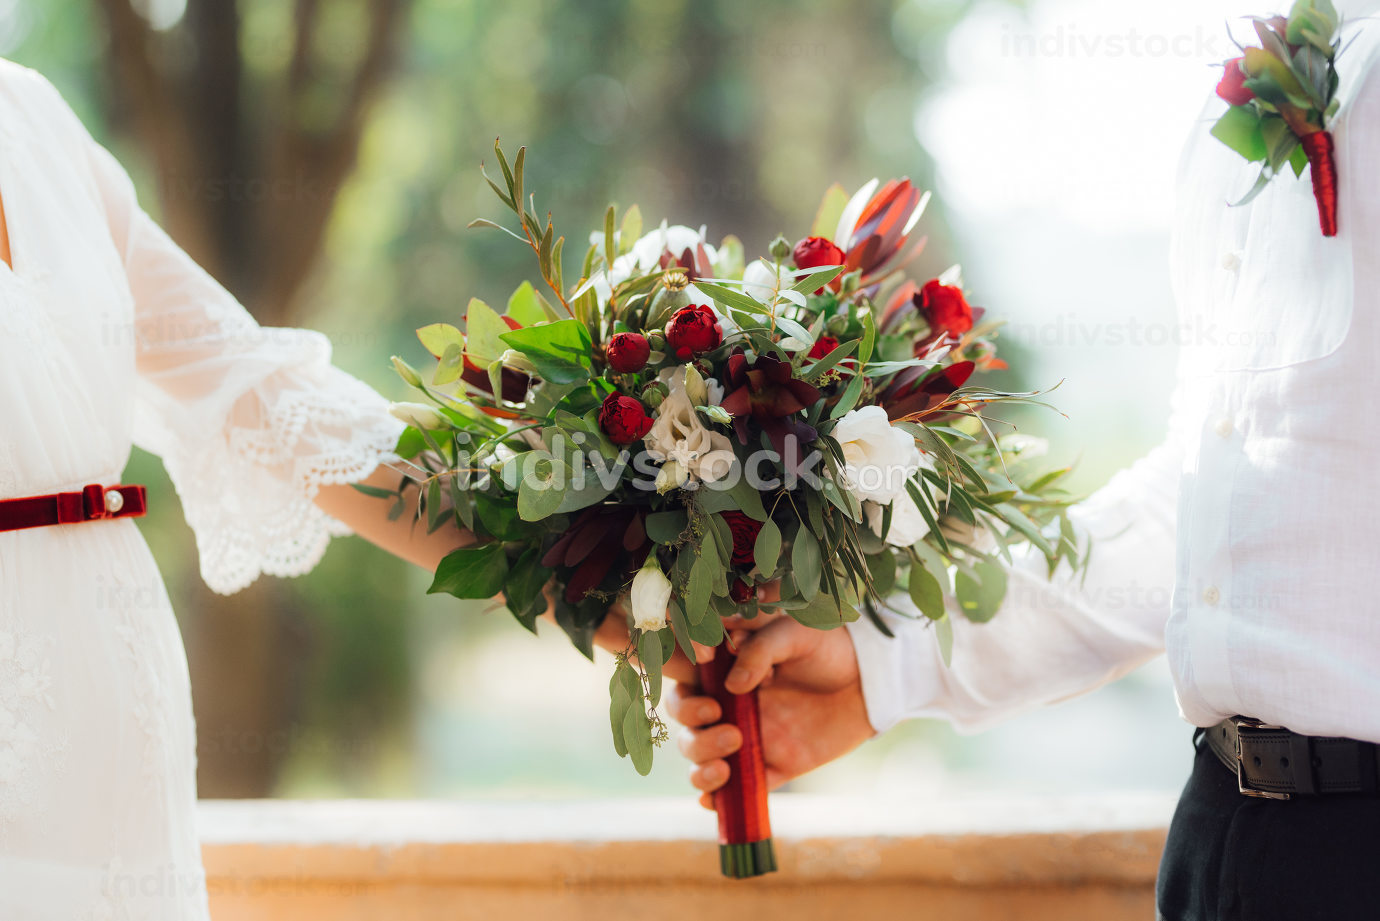 wedding bouquet of red flowers and greenery